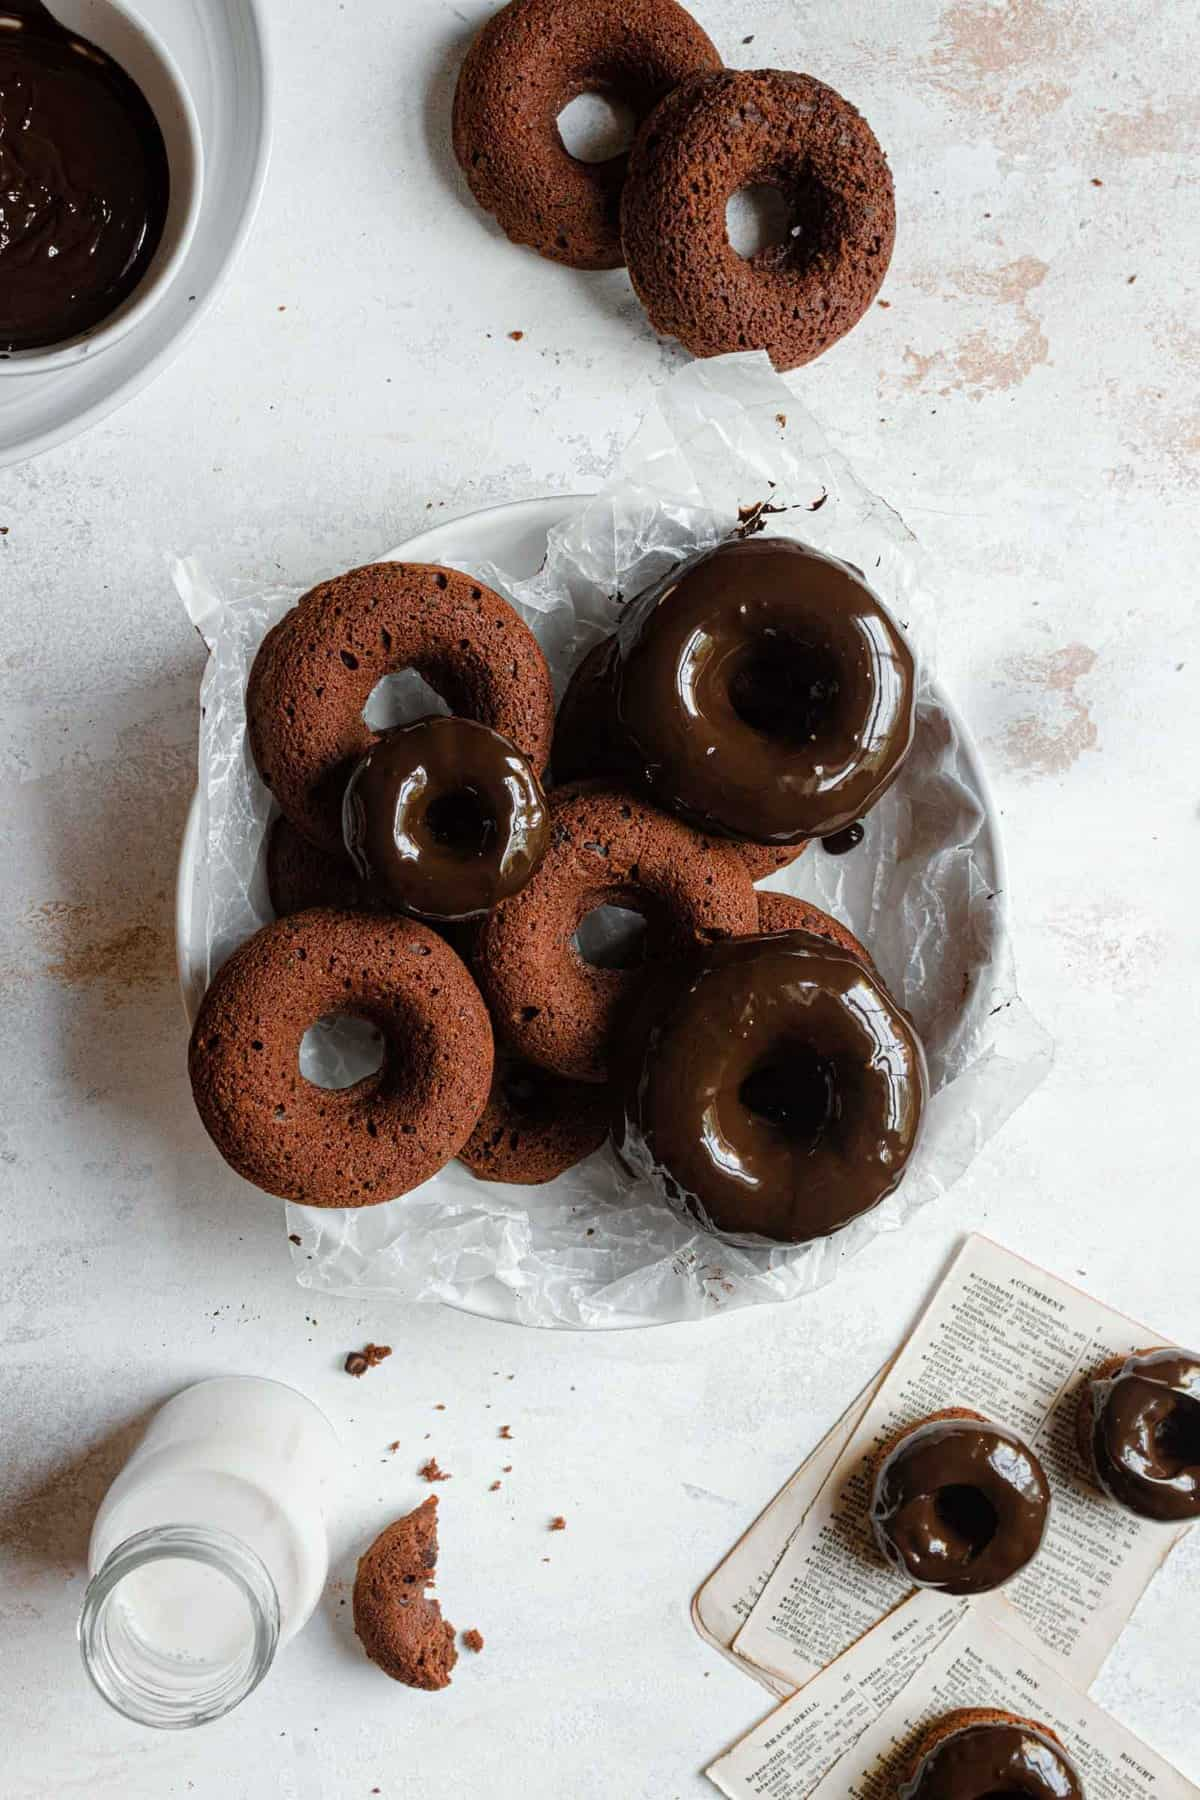 baked chocolate donuts recipe